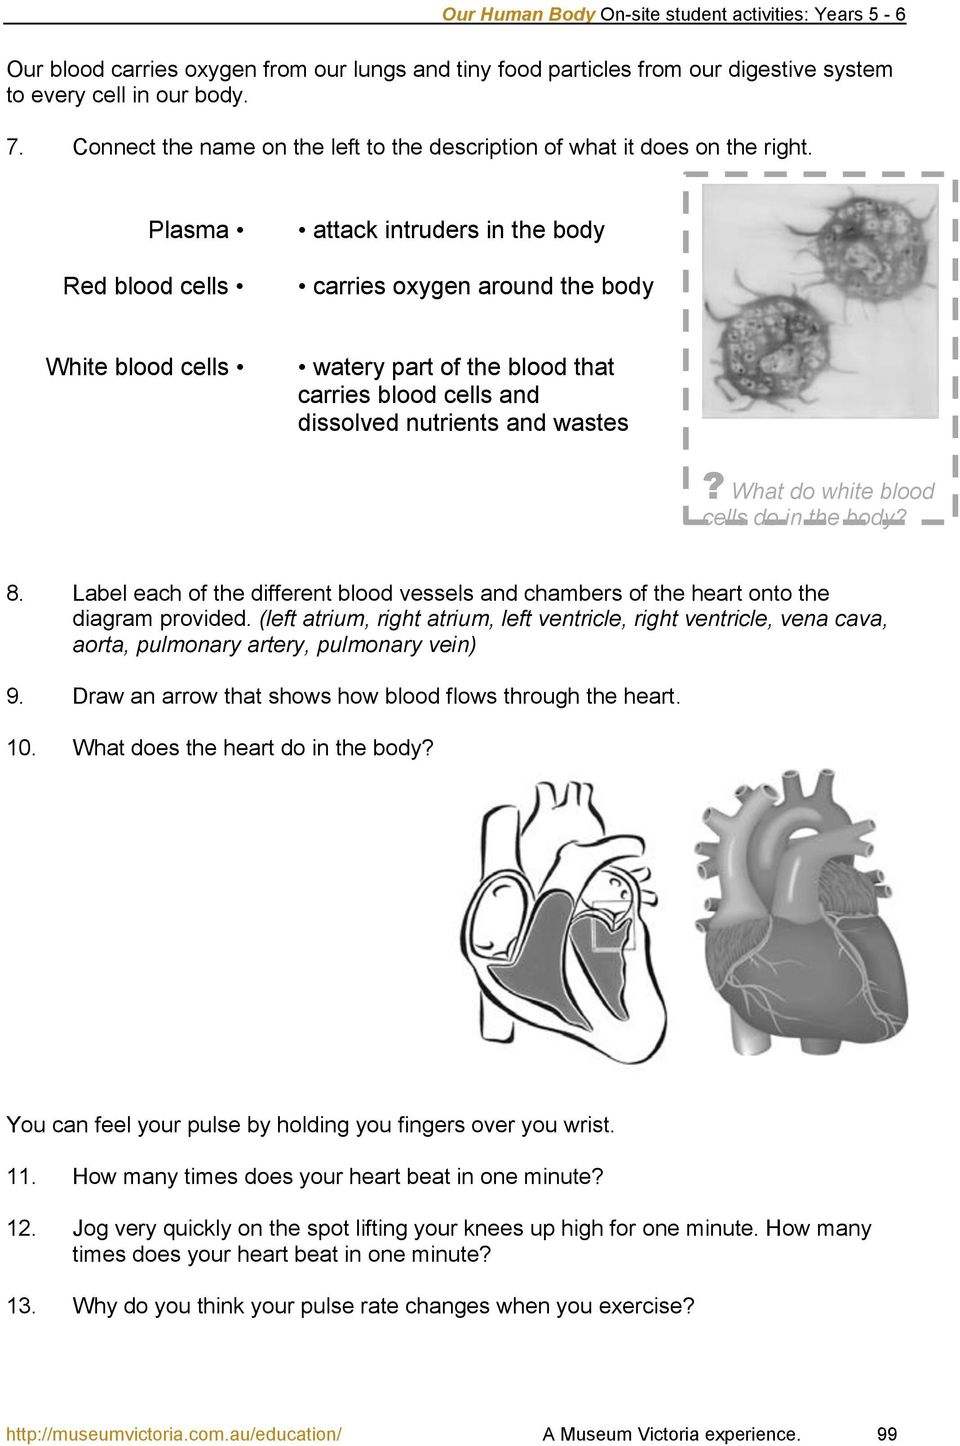 What do white blood cells do in the body? 8. Label each of the different blood vessels and chambers of the heart onto the diagram provided.